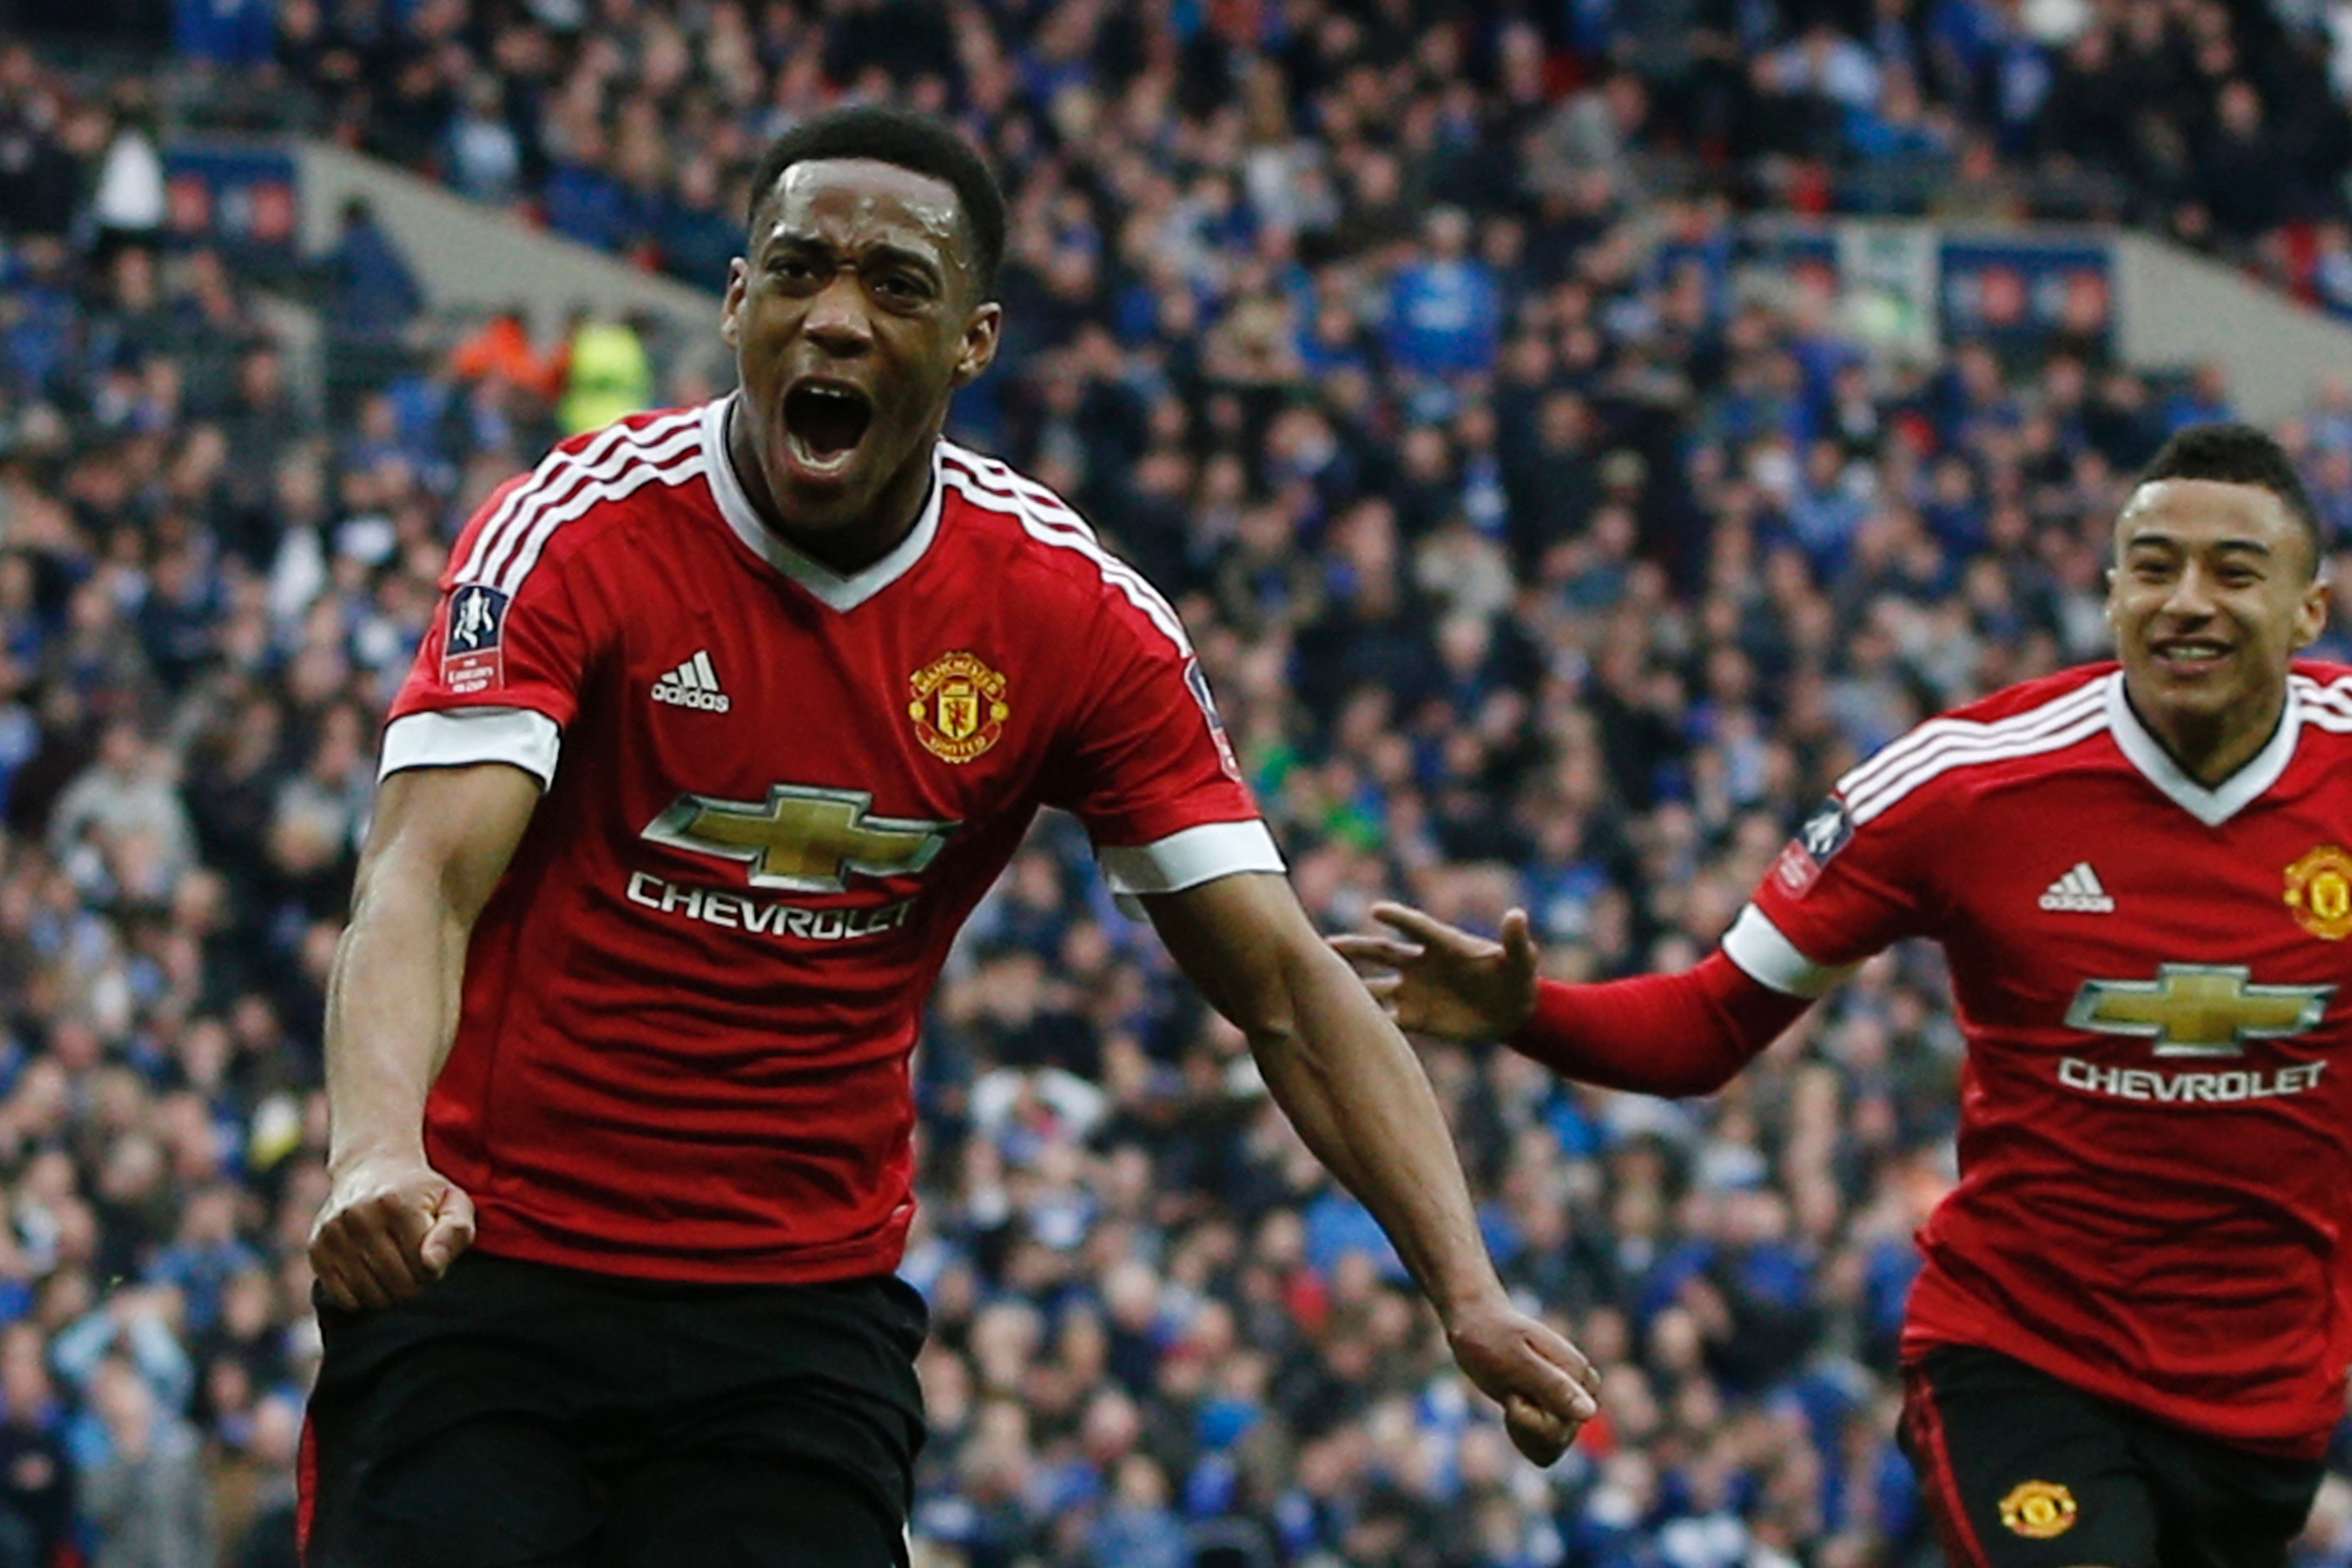 Leicester City-Manchester United live stream, Leicester City-Manchester United stream, Leicester City-Manchester United vivo stream, Leicester City trophy online, Leicester City-Manchester United, leicester man utd stream, Leicester City-Manchester United online, leicester man united watch free, live, leicester united channel, app, phone, console, tablet, Leicester City title live,